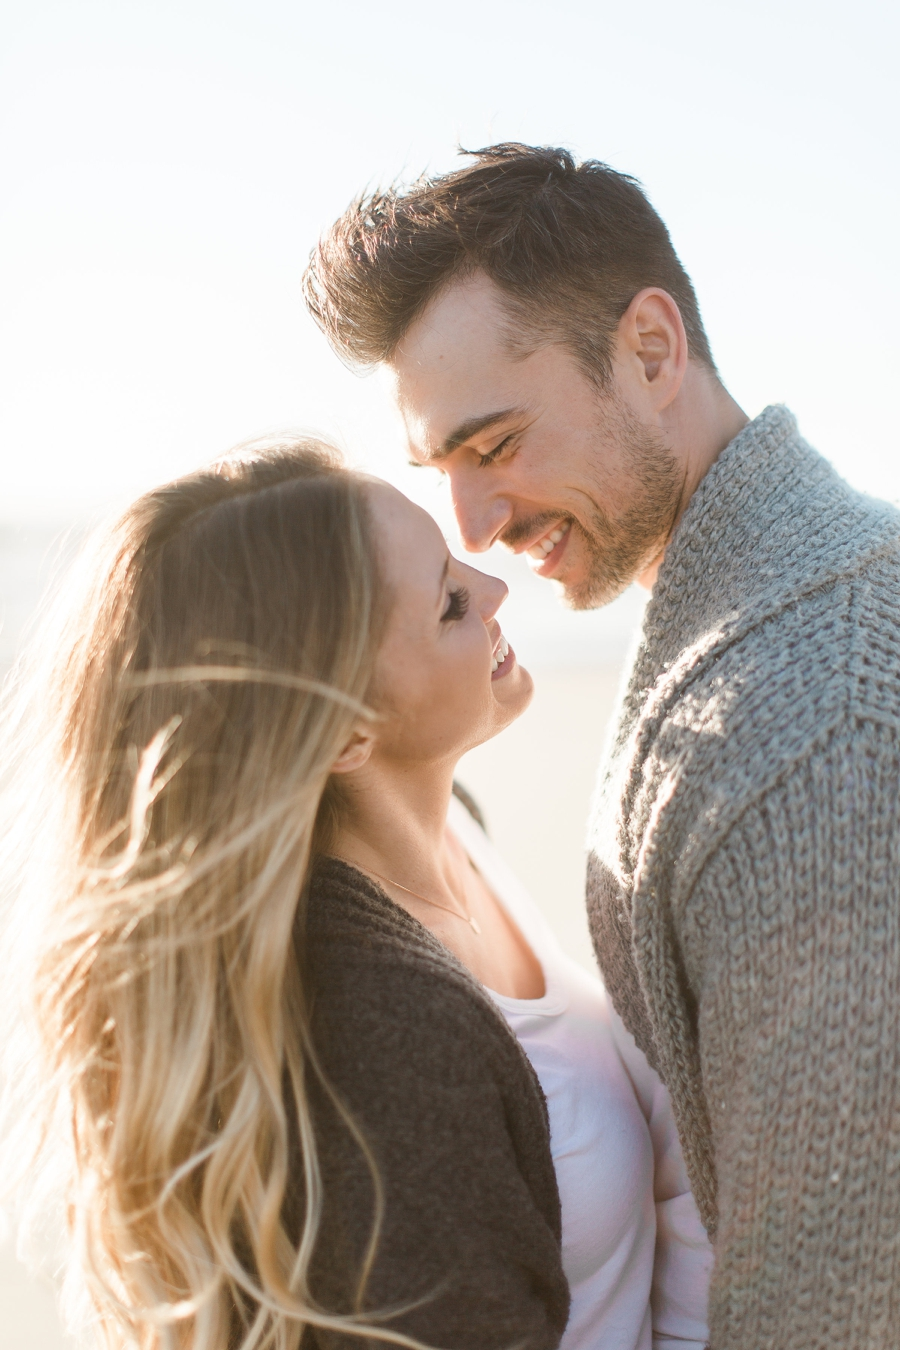 taylor_kinzie_photography_los_angeles_wedding_photographer_beach_engagement_session_0016